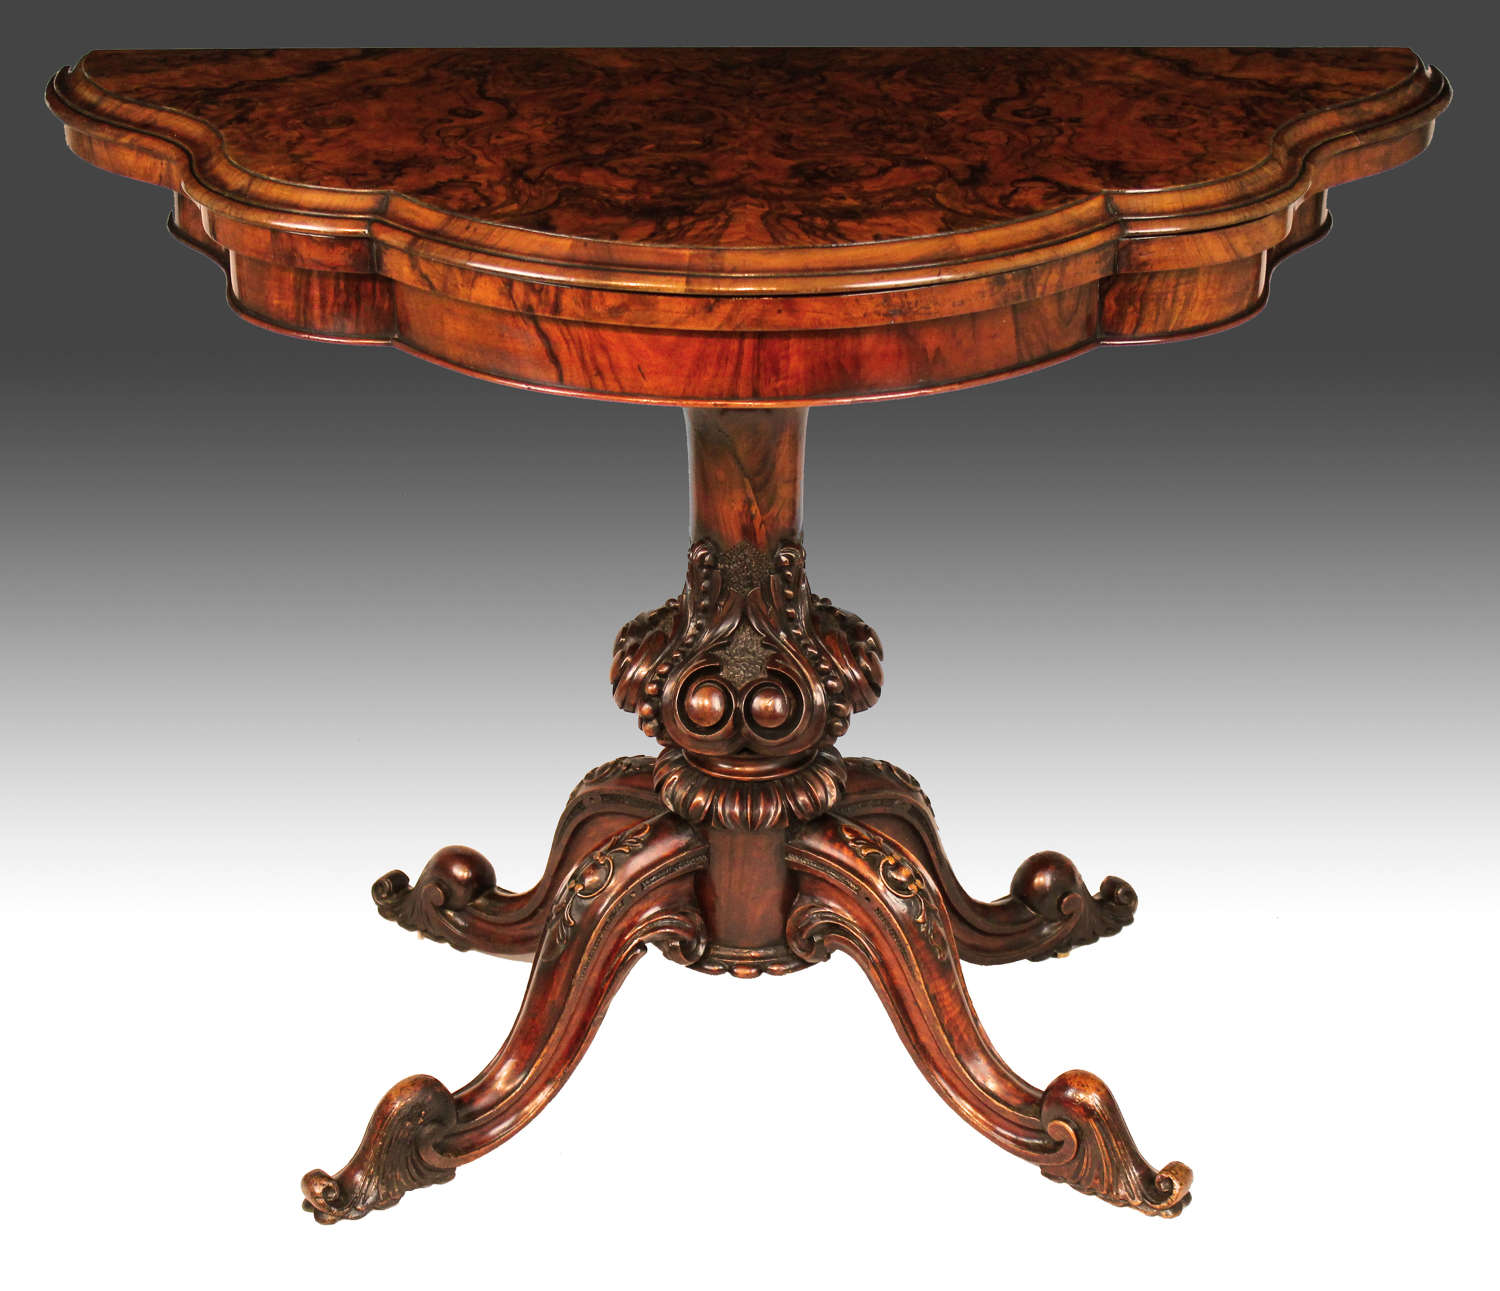 A Late Victorian Burr Walnut Serpentine Shape Card Table